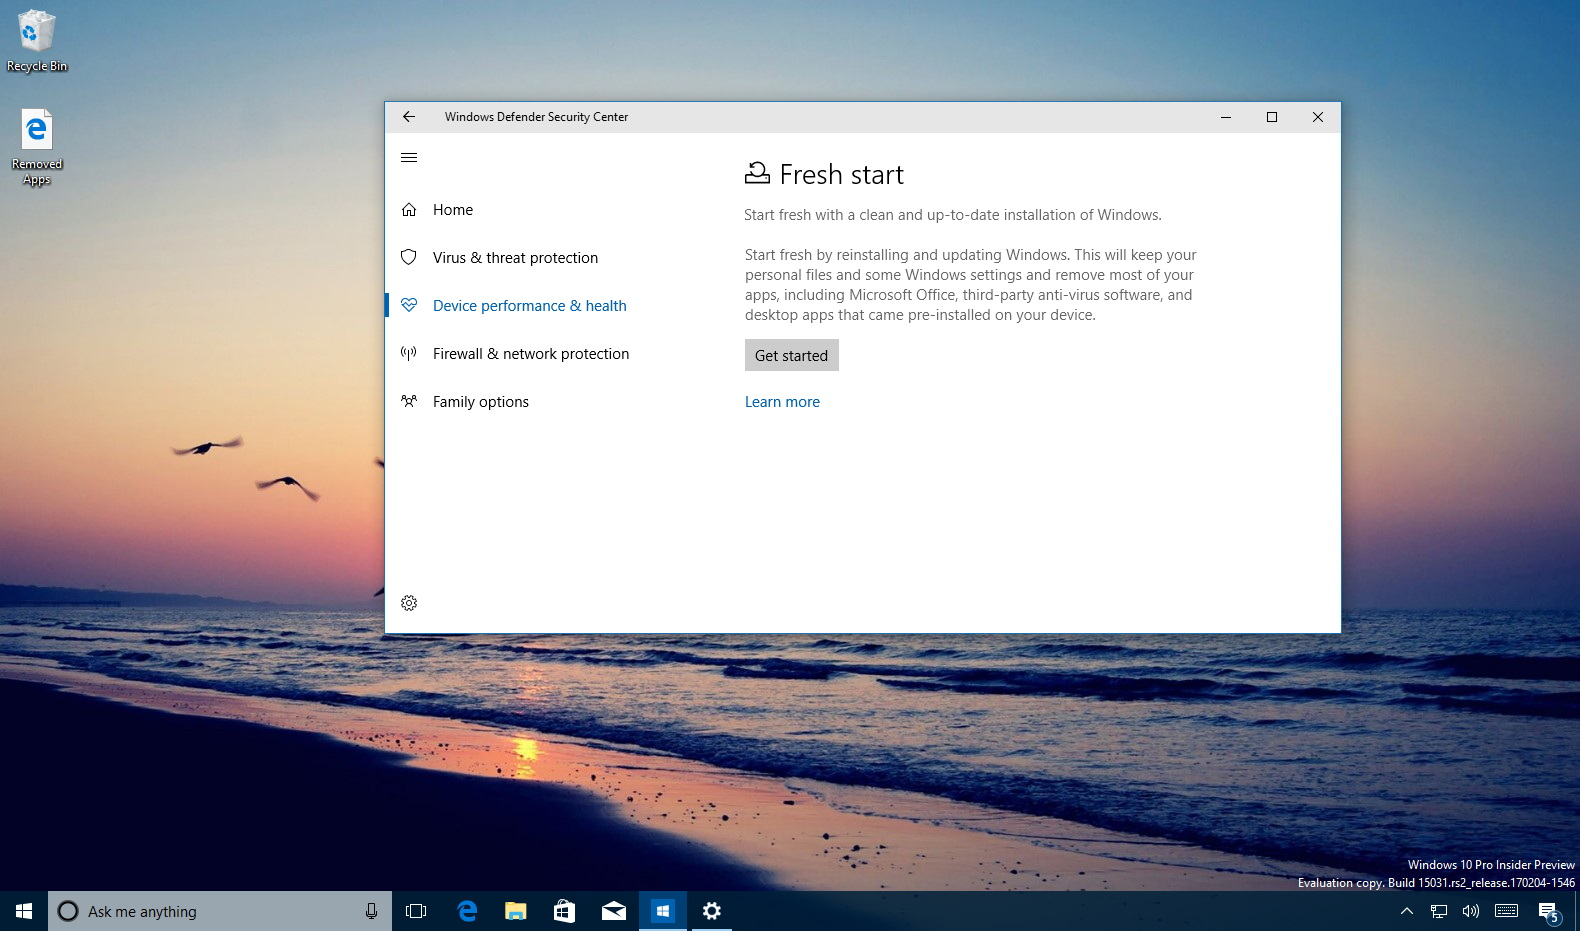 How to reinstall and update Windows 10 on-demand without losing data